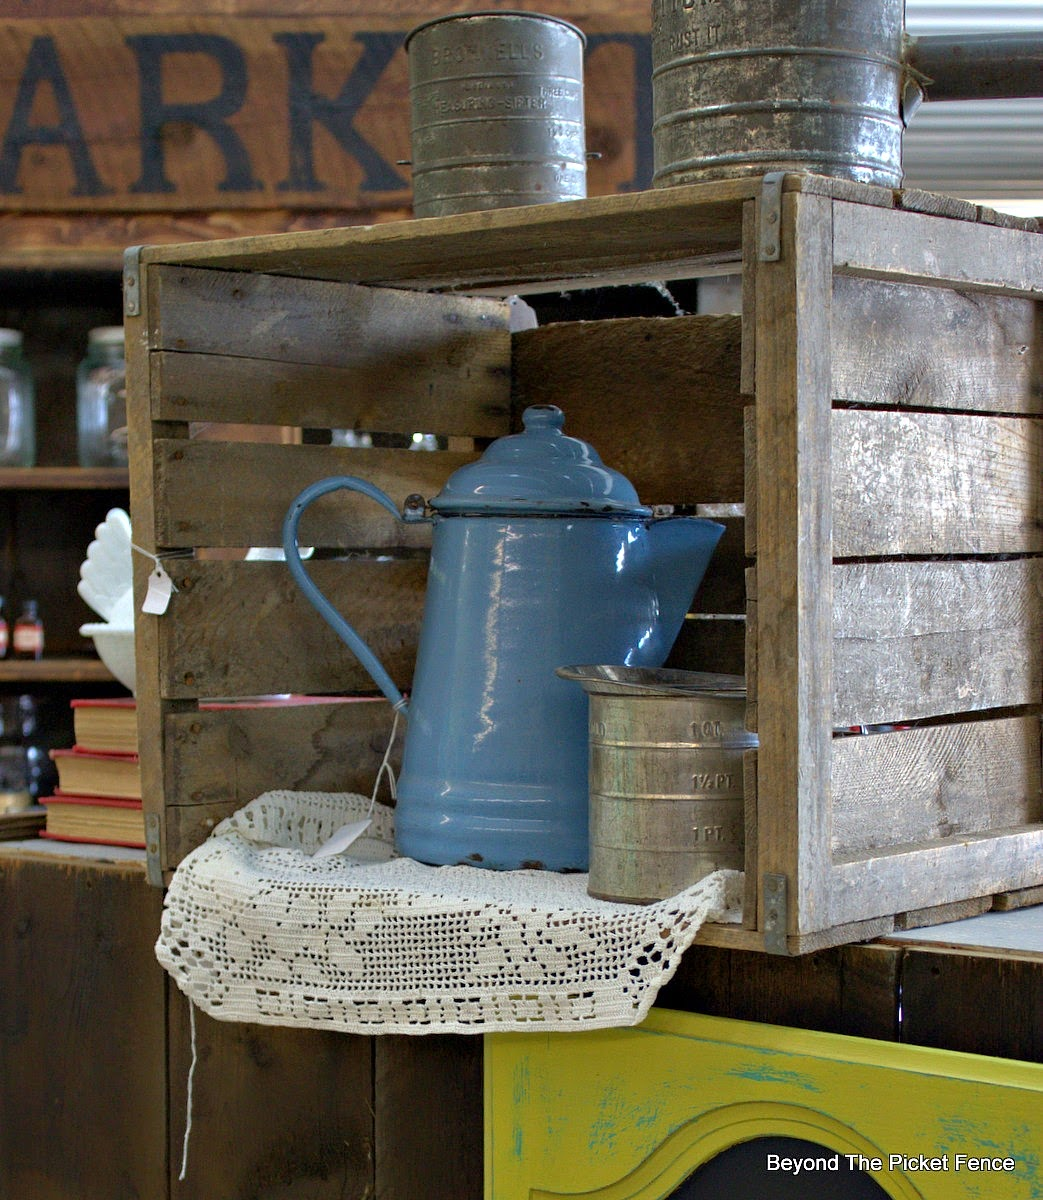 Beyond The Picket Fence, crate, enamelware, antiques, Beyond The Picket Fence, http://bec4-beyondthepicketfence.blogspot.com/2015/02/5-decorating-lessons-from-store.html